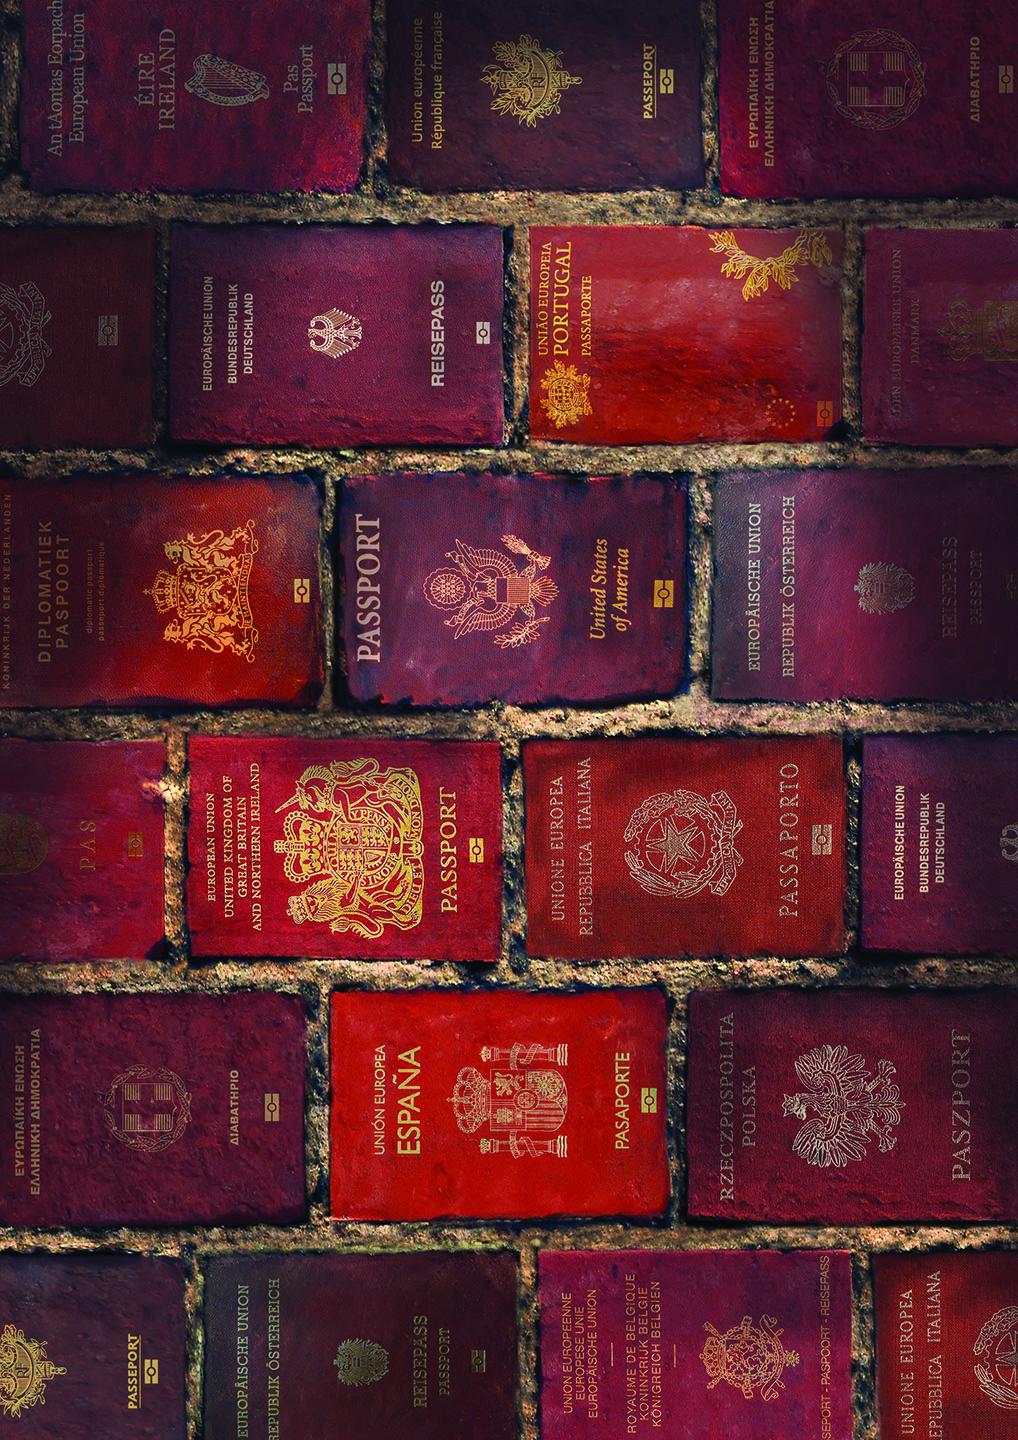 Red passports from various countries are arranged and separated by mortar, resembling a brick wall.